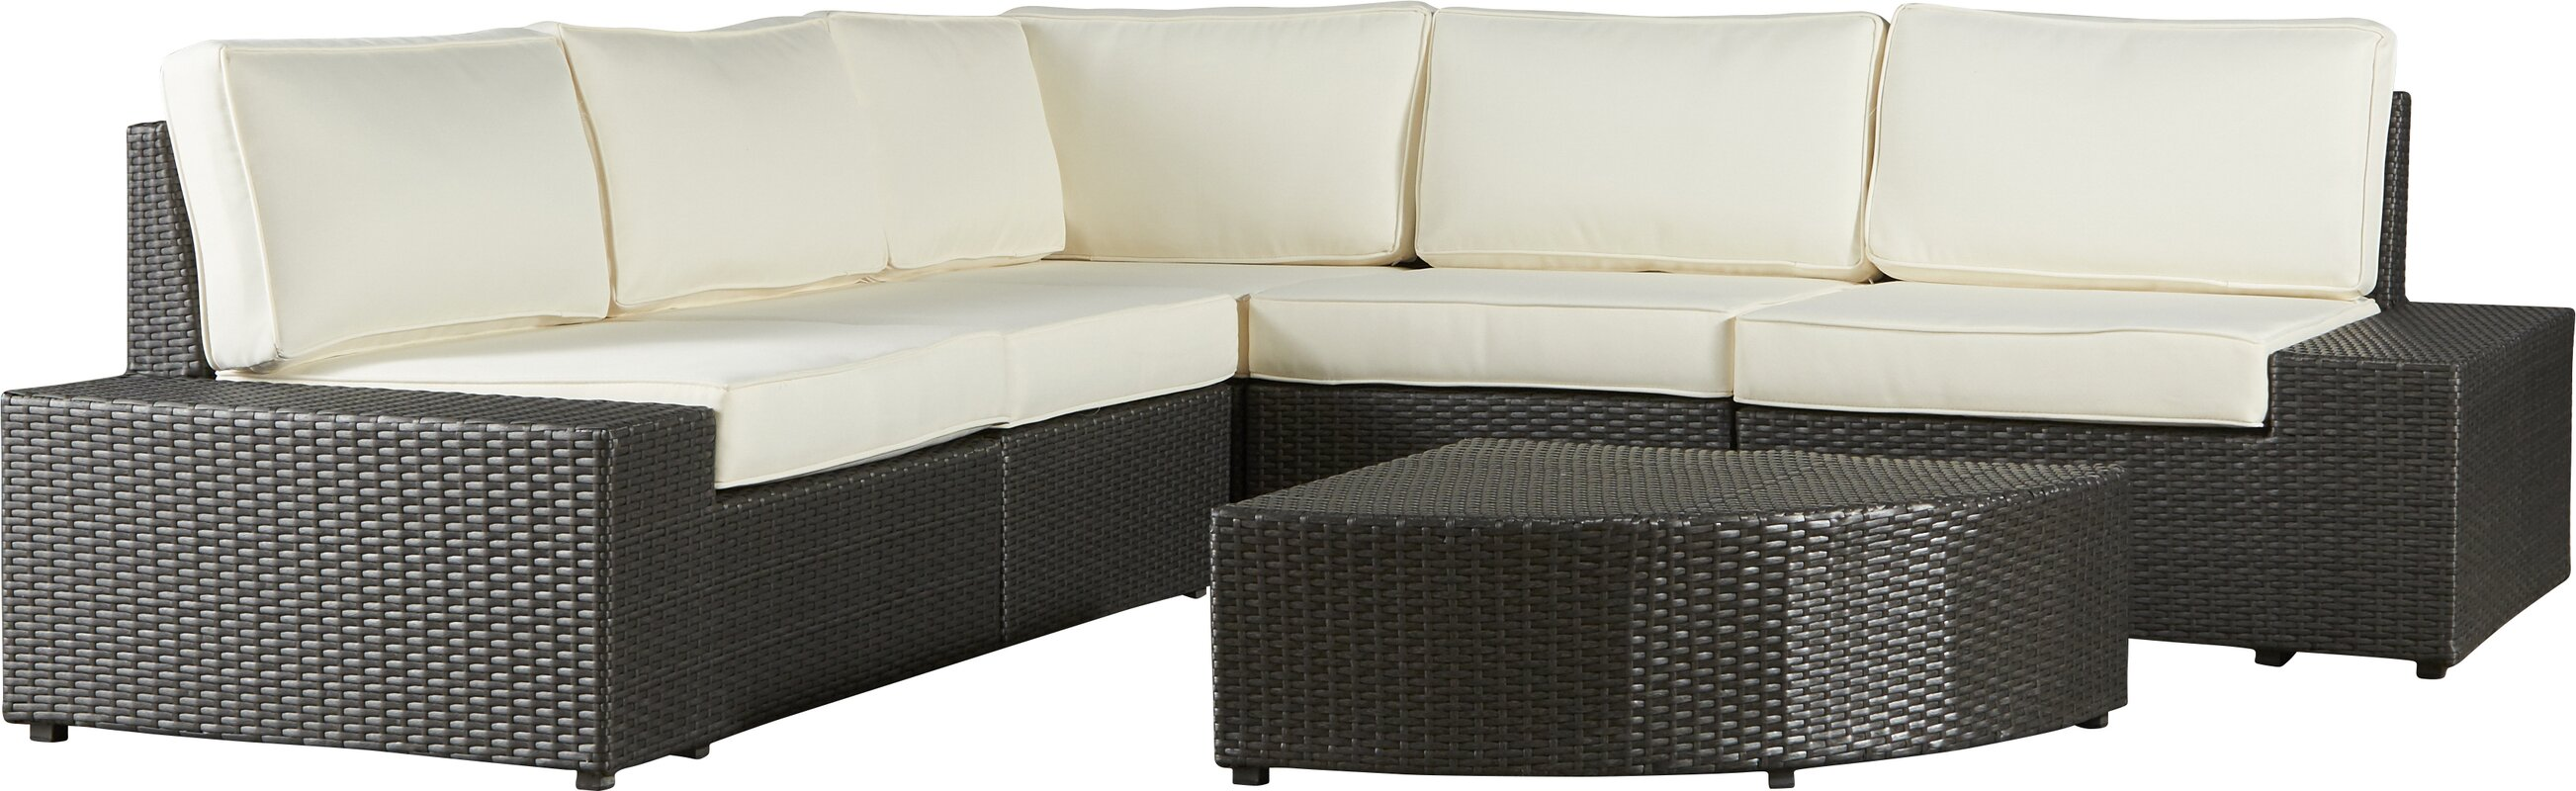 Latitude Run Riam 7 Piece Rattan Conversation Set with Cushions